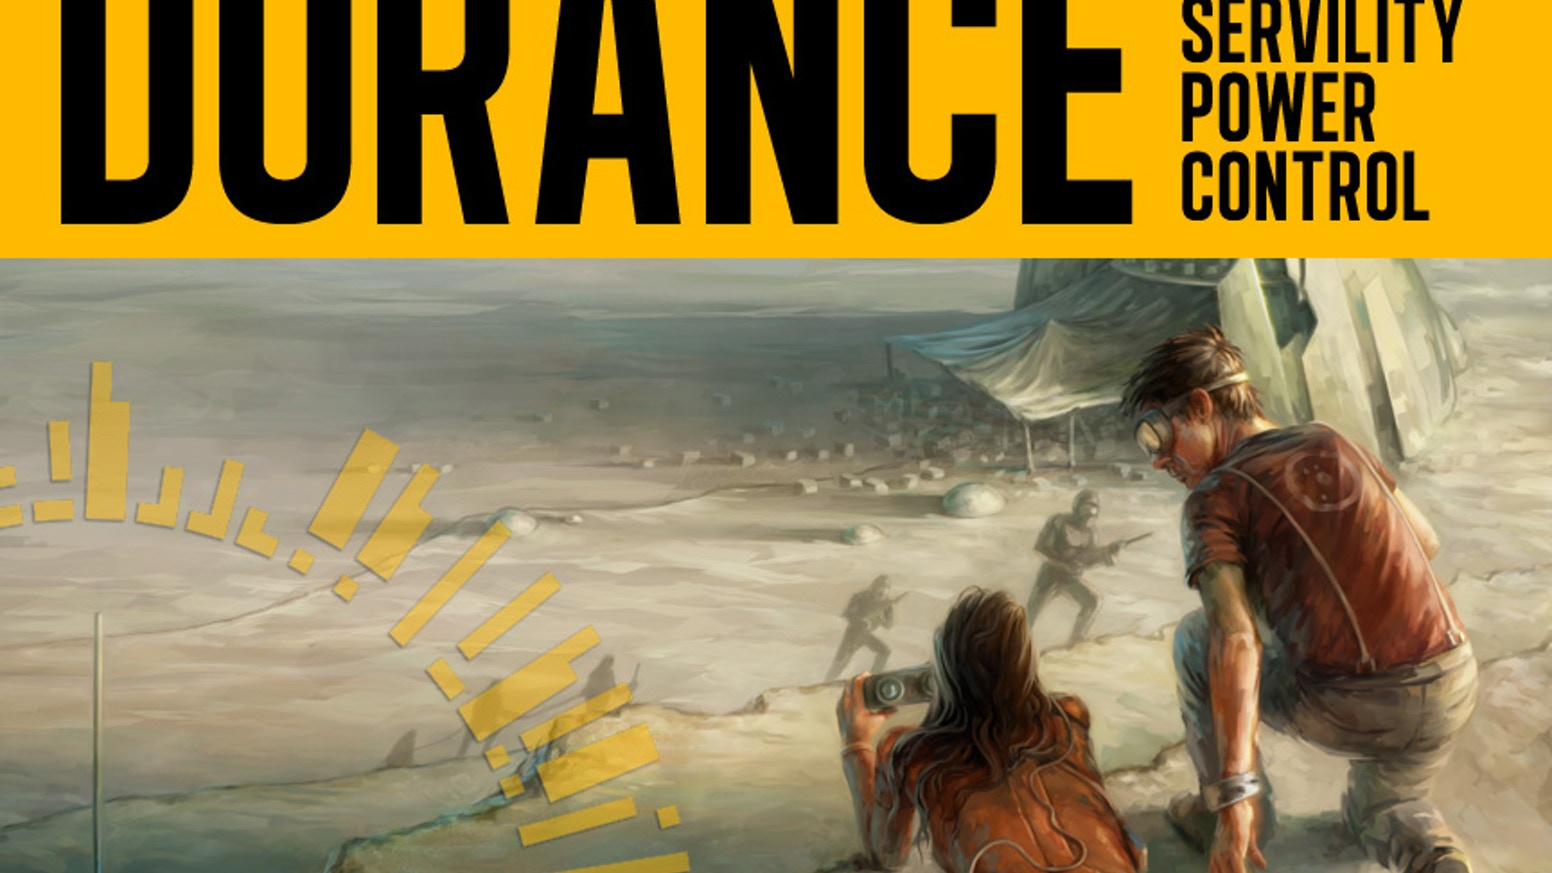 Durance is Jason Morningstar's take on life in a far-future penal colony. It's a fast-paced, low-prep, collaborative tabletop game.